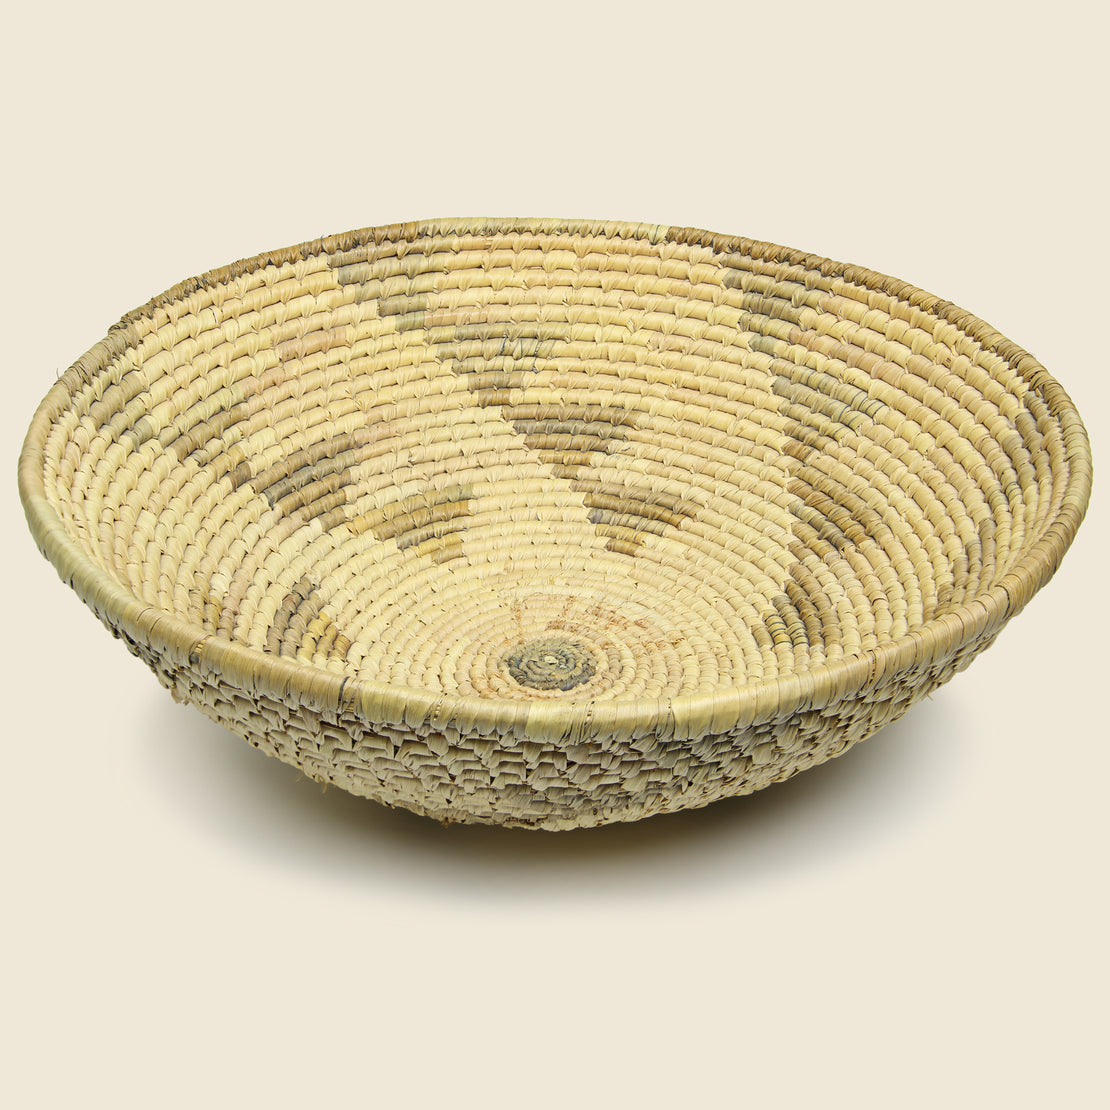 Papago-Style Native American Basket - Vintage - STAG Provisions - One & Done - Art